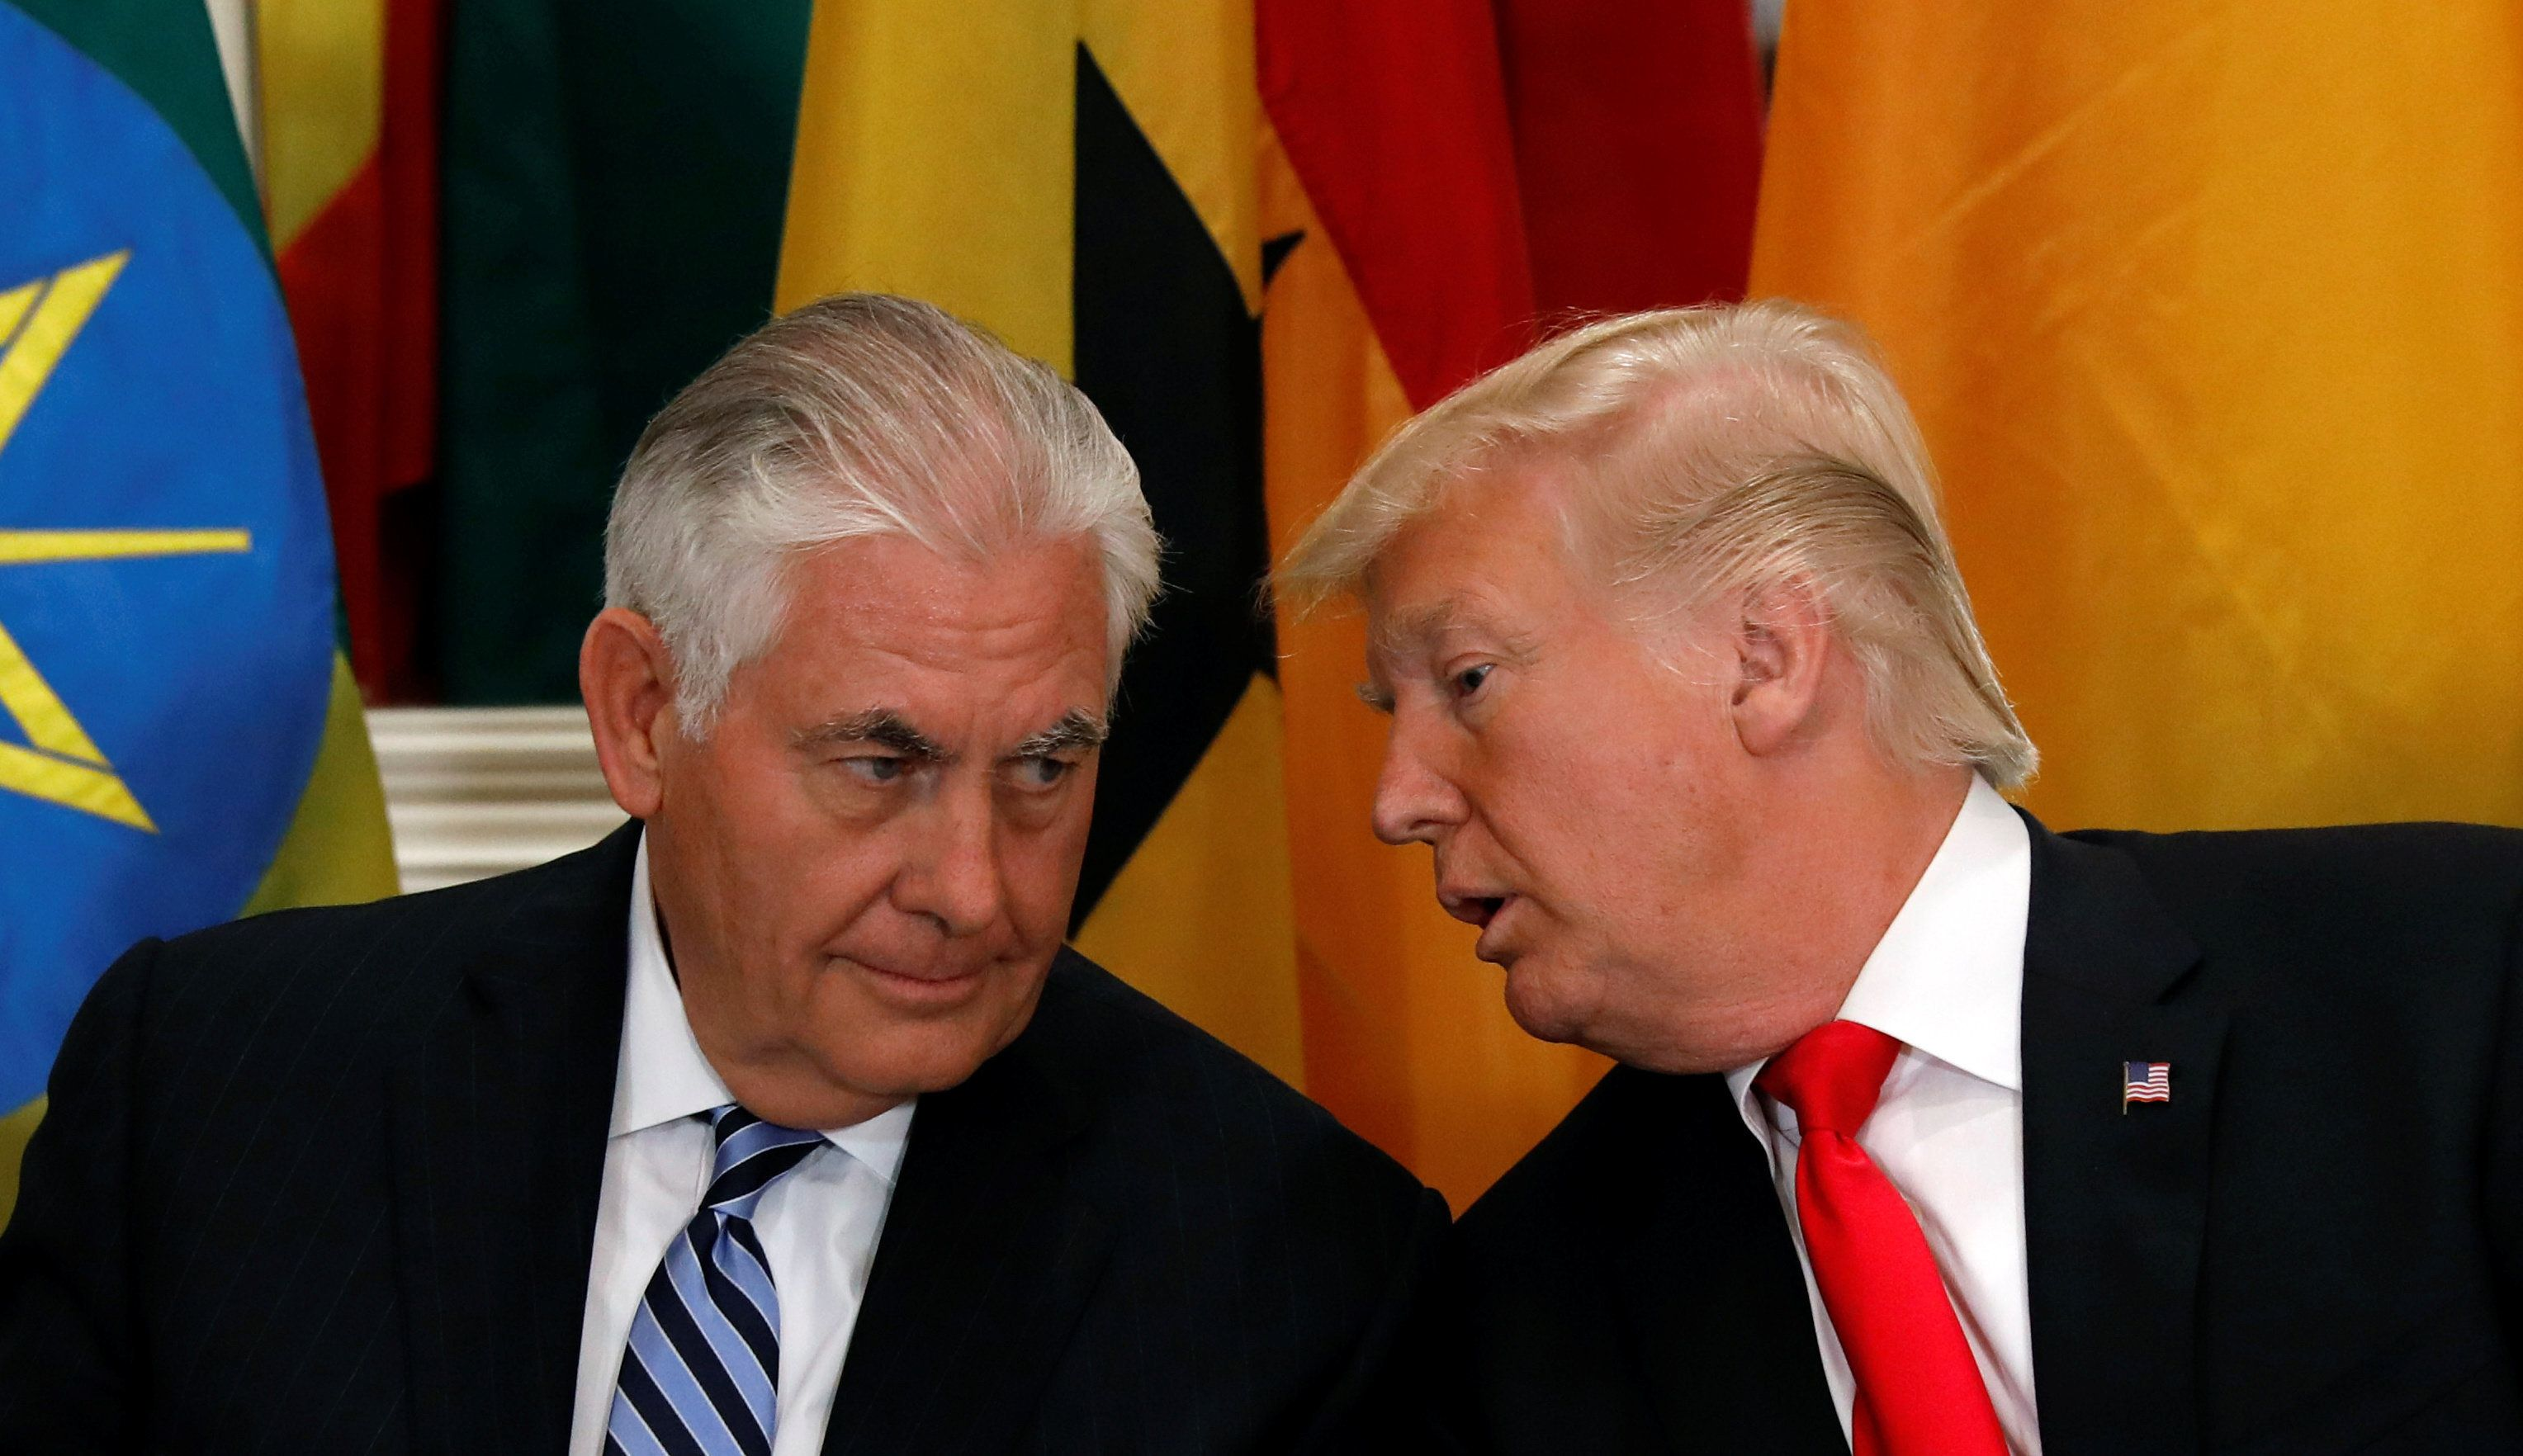 Tillerson on Whether Trump Has 'Castrated' Him: 'I Checked, I'm Fully Intact'